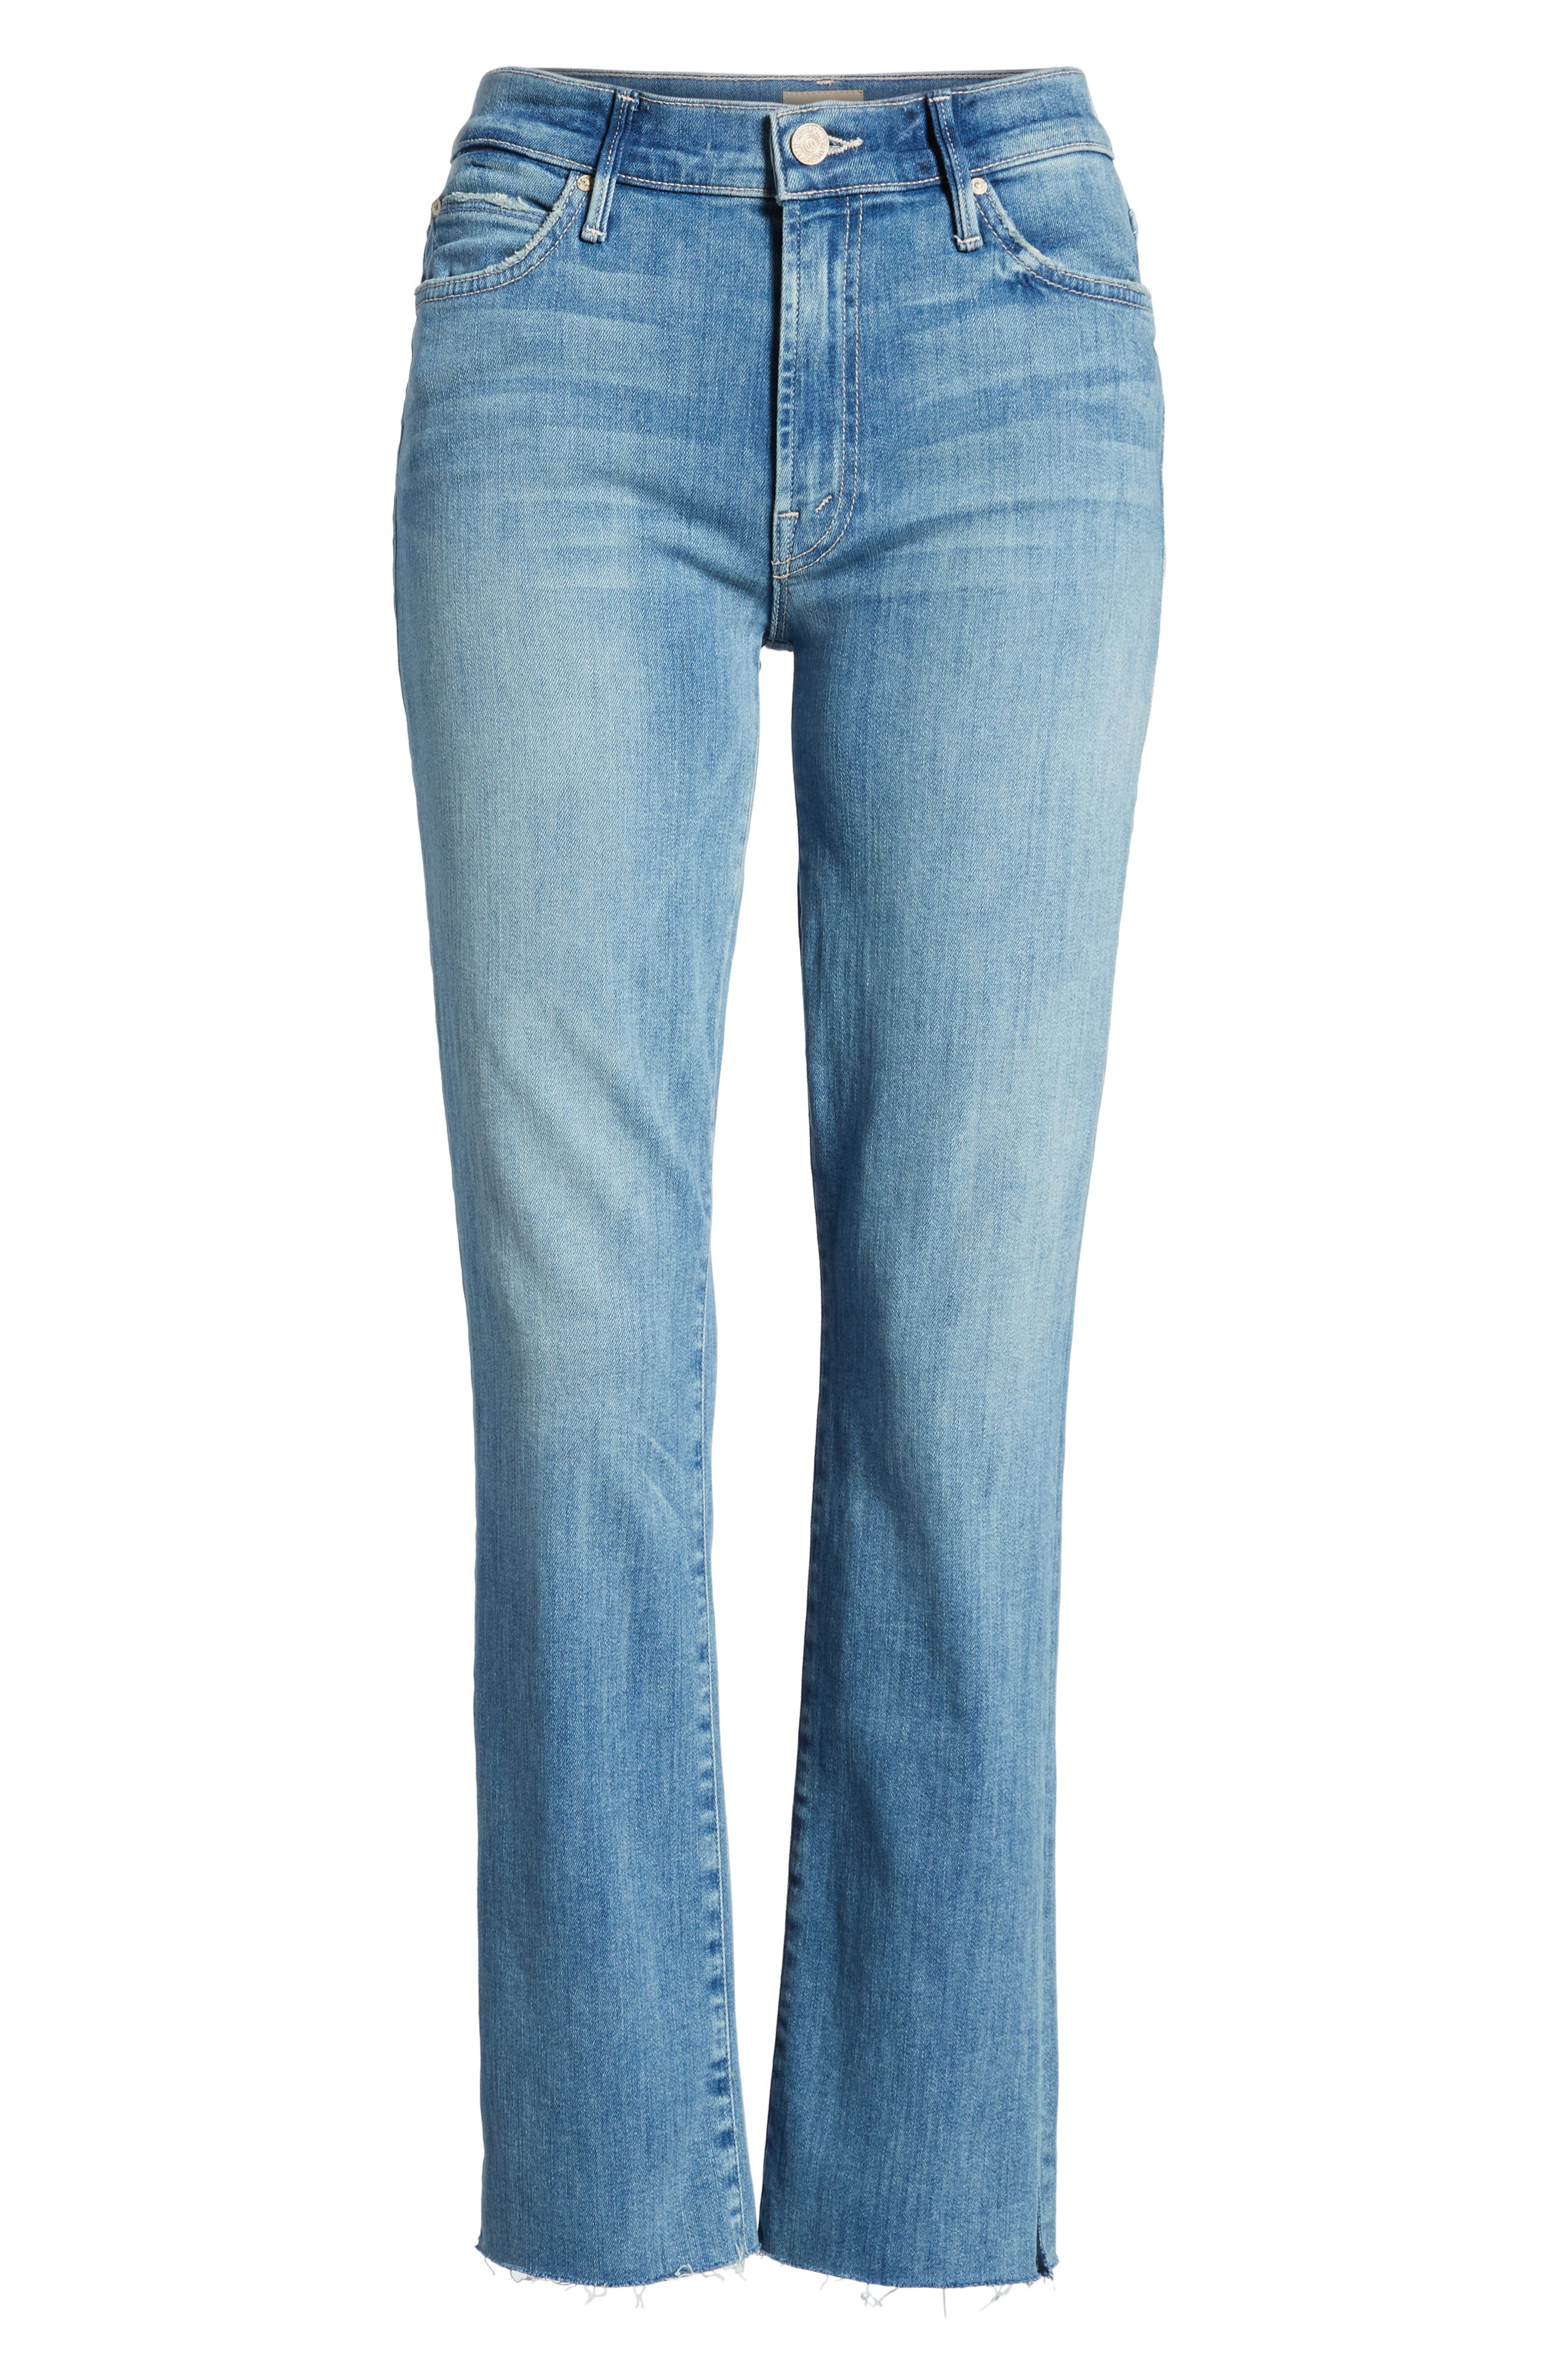 MOTHER,                             The Rascal Ankle Snippet Straight Leg Jeans,                             Alternate thumbnail 7, color,                             400